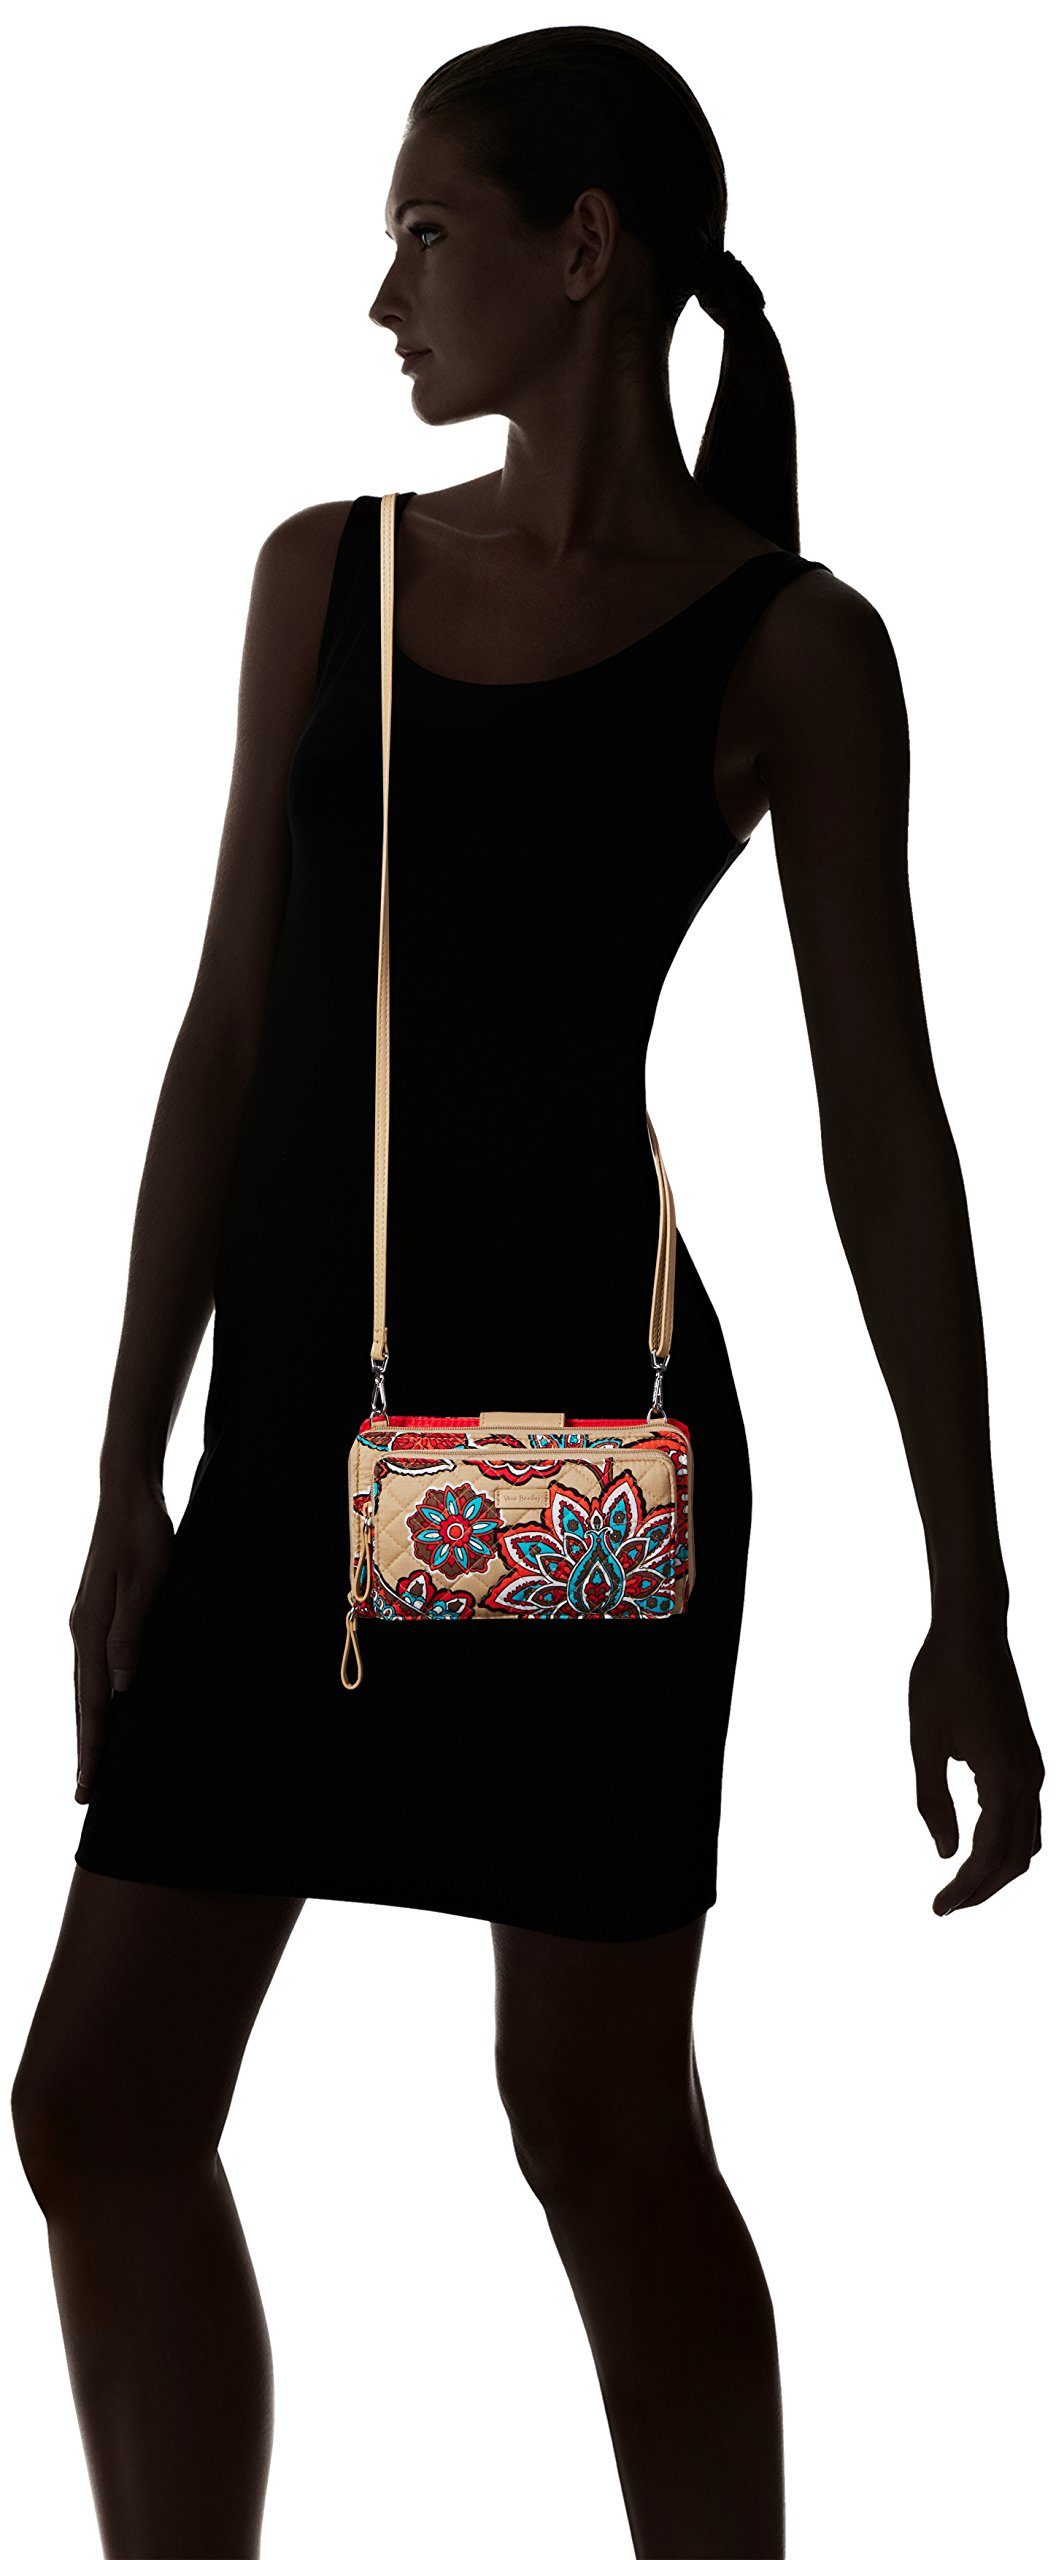 Vera Bradley Iconic Deluxe All Together Crossbody, Signature Cotton, Desert Floral by Vera Bradley (Image #6)